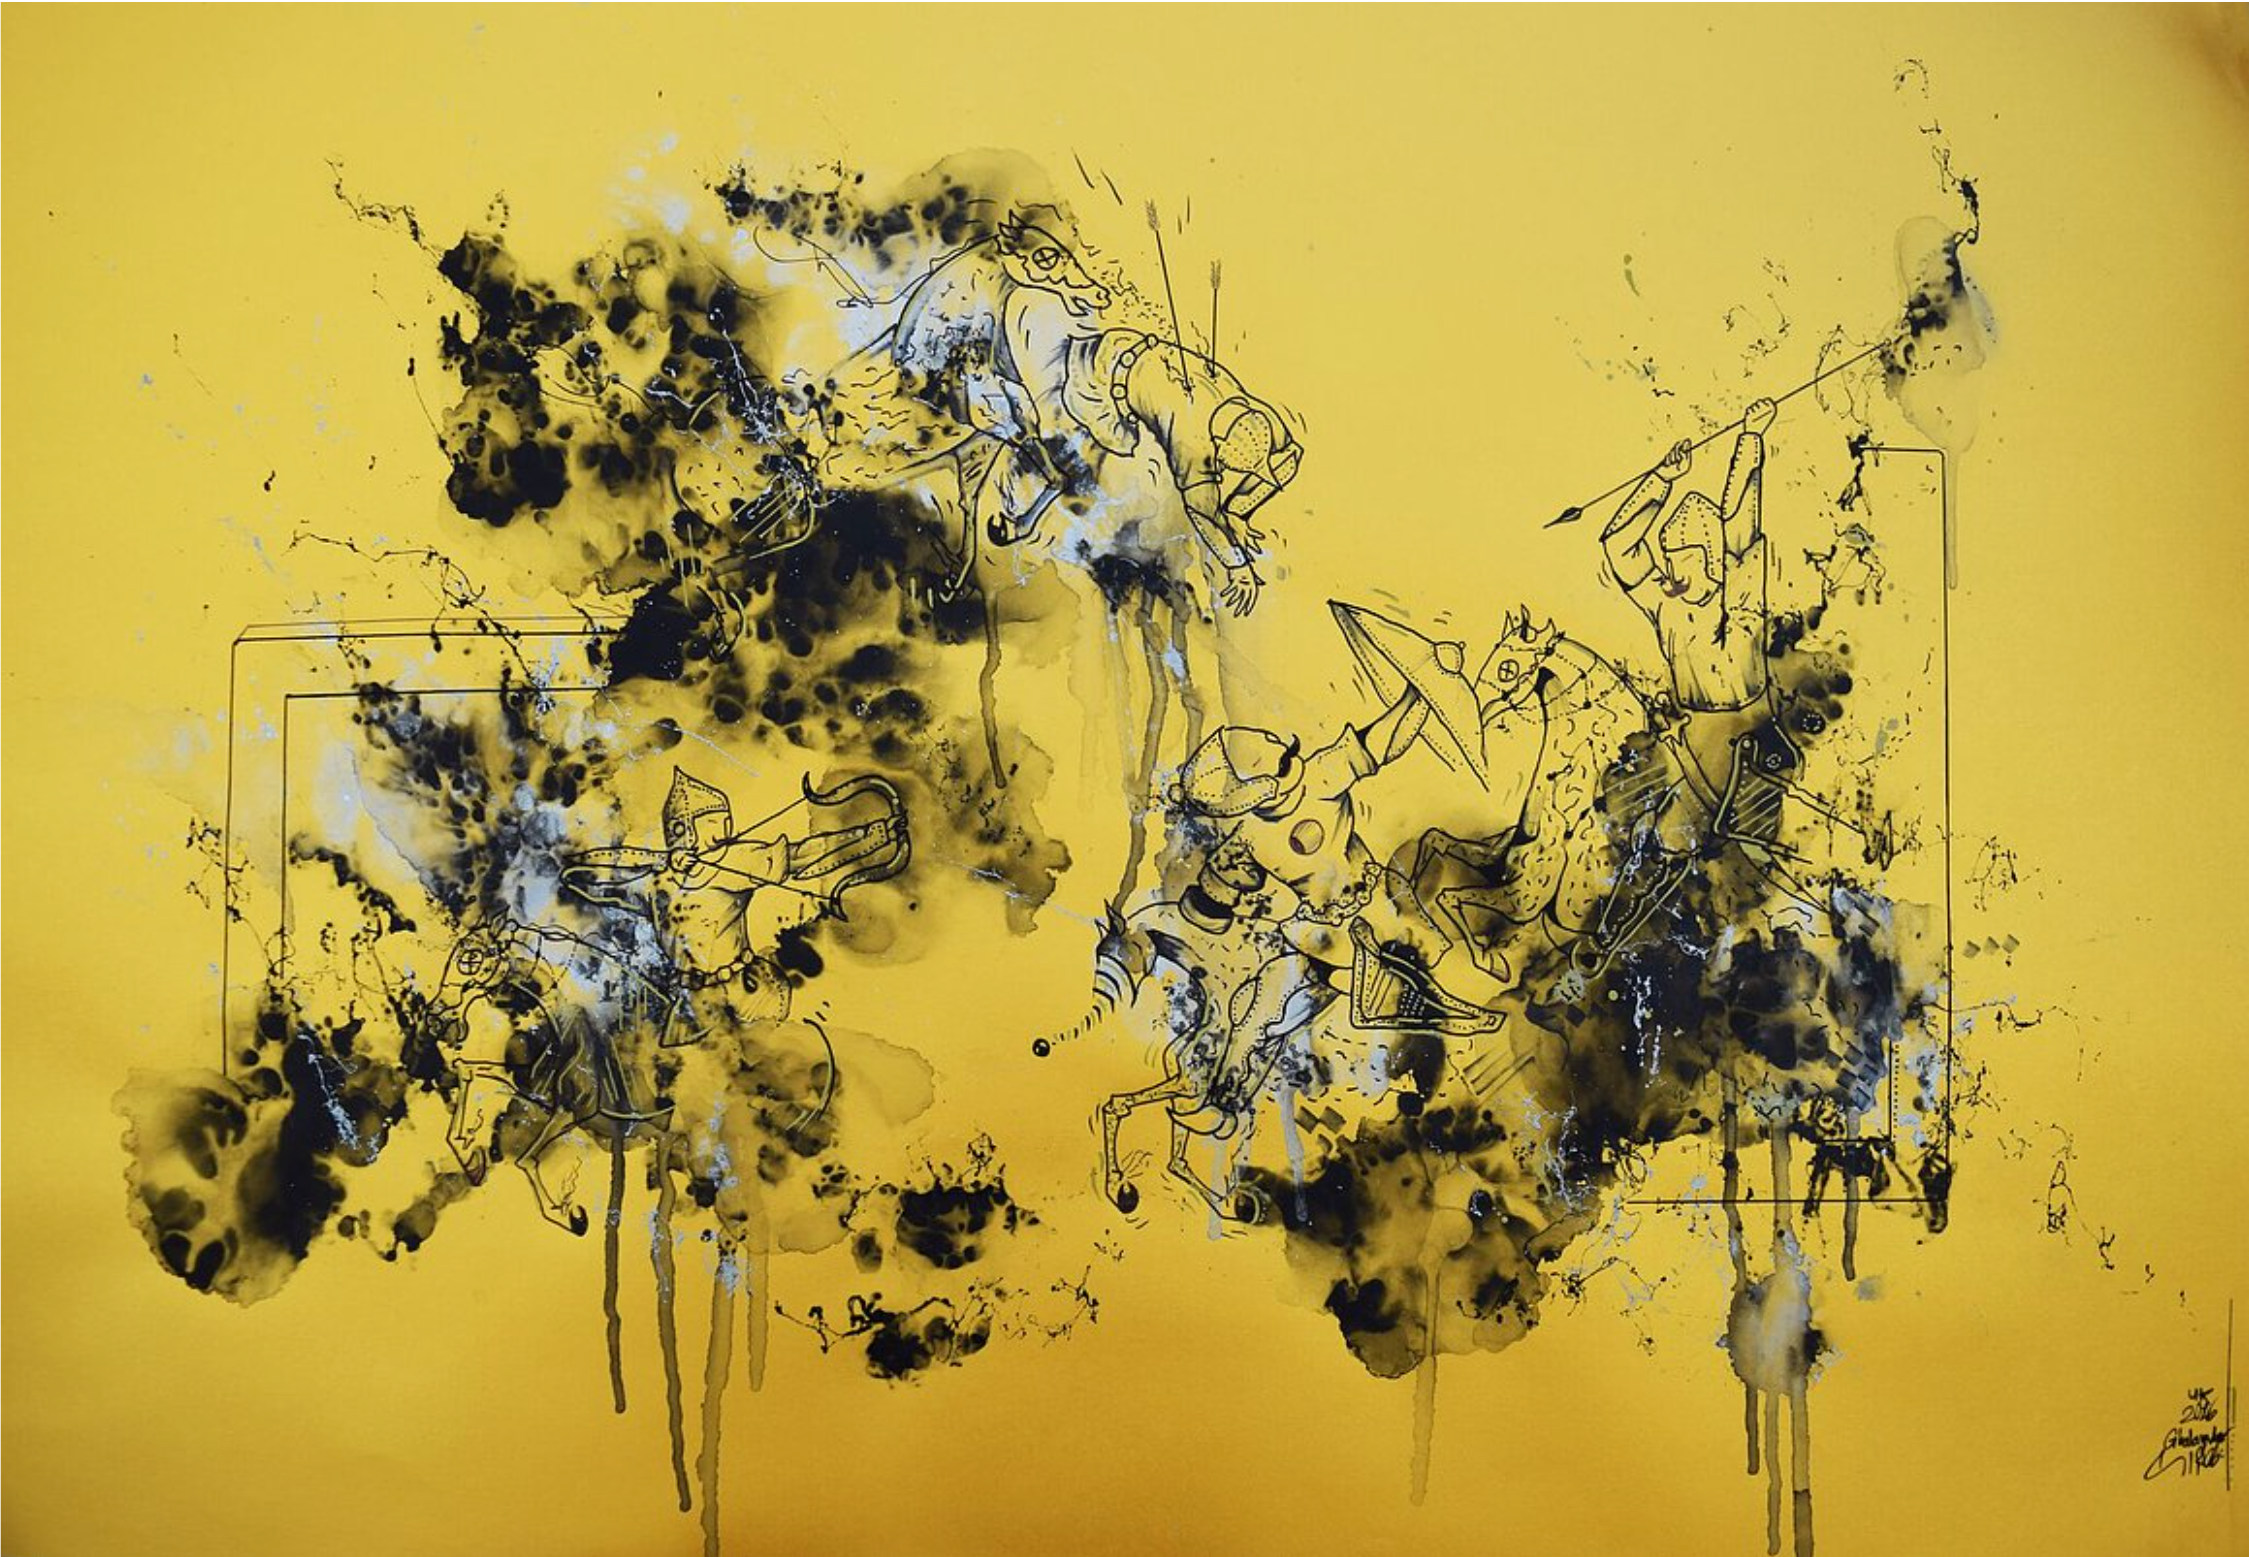 Ghalamdar, Untitled, unique screen print, ink and spray paint on pearl scent paper, 60 x 84 cm, 2016